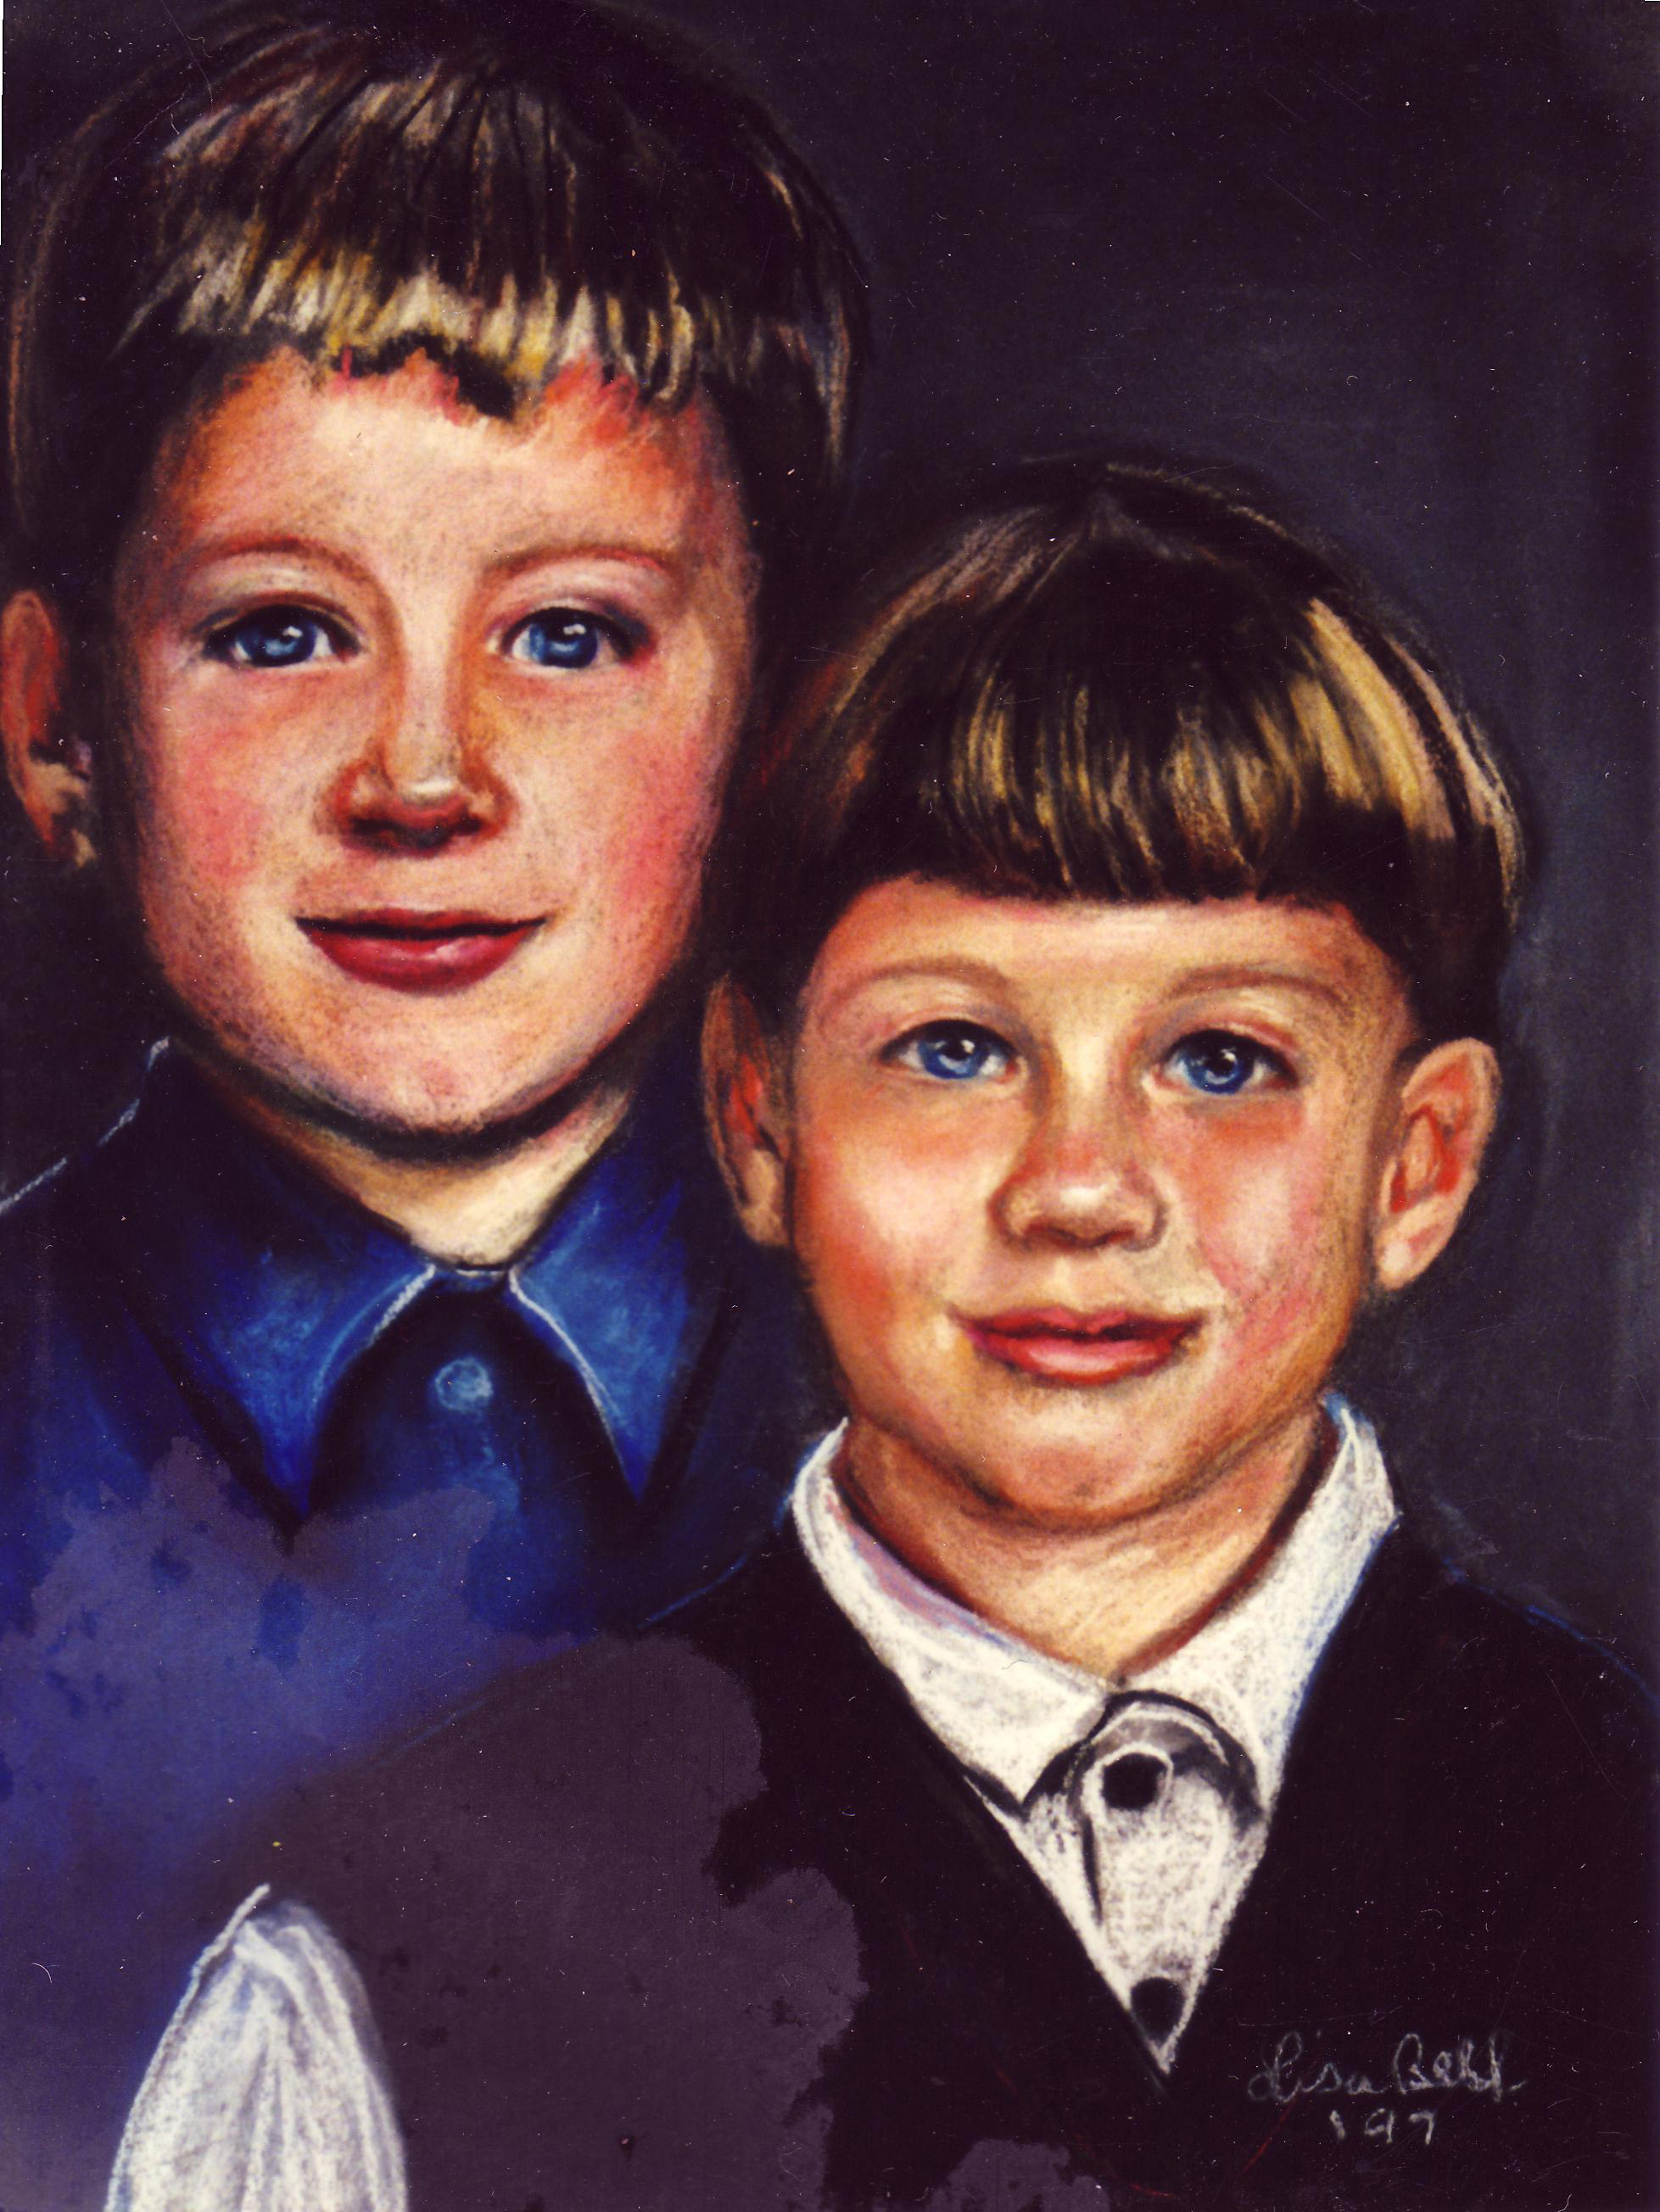 Siblings painted, paintings of brothers and sisters by Lisabelle, commission artist Lisabelle, www.lisabelle-artist.com, send a photo receive a painting, realistic portraits, portraits by hand,